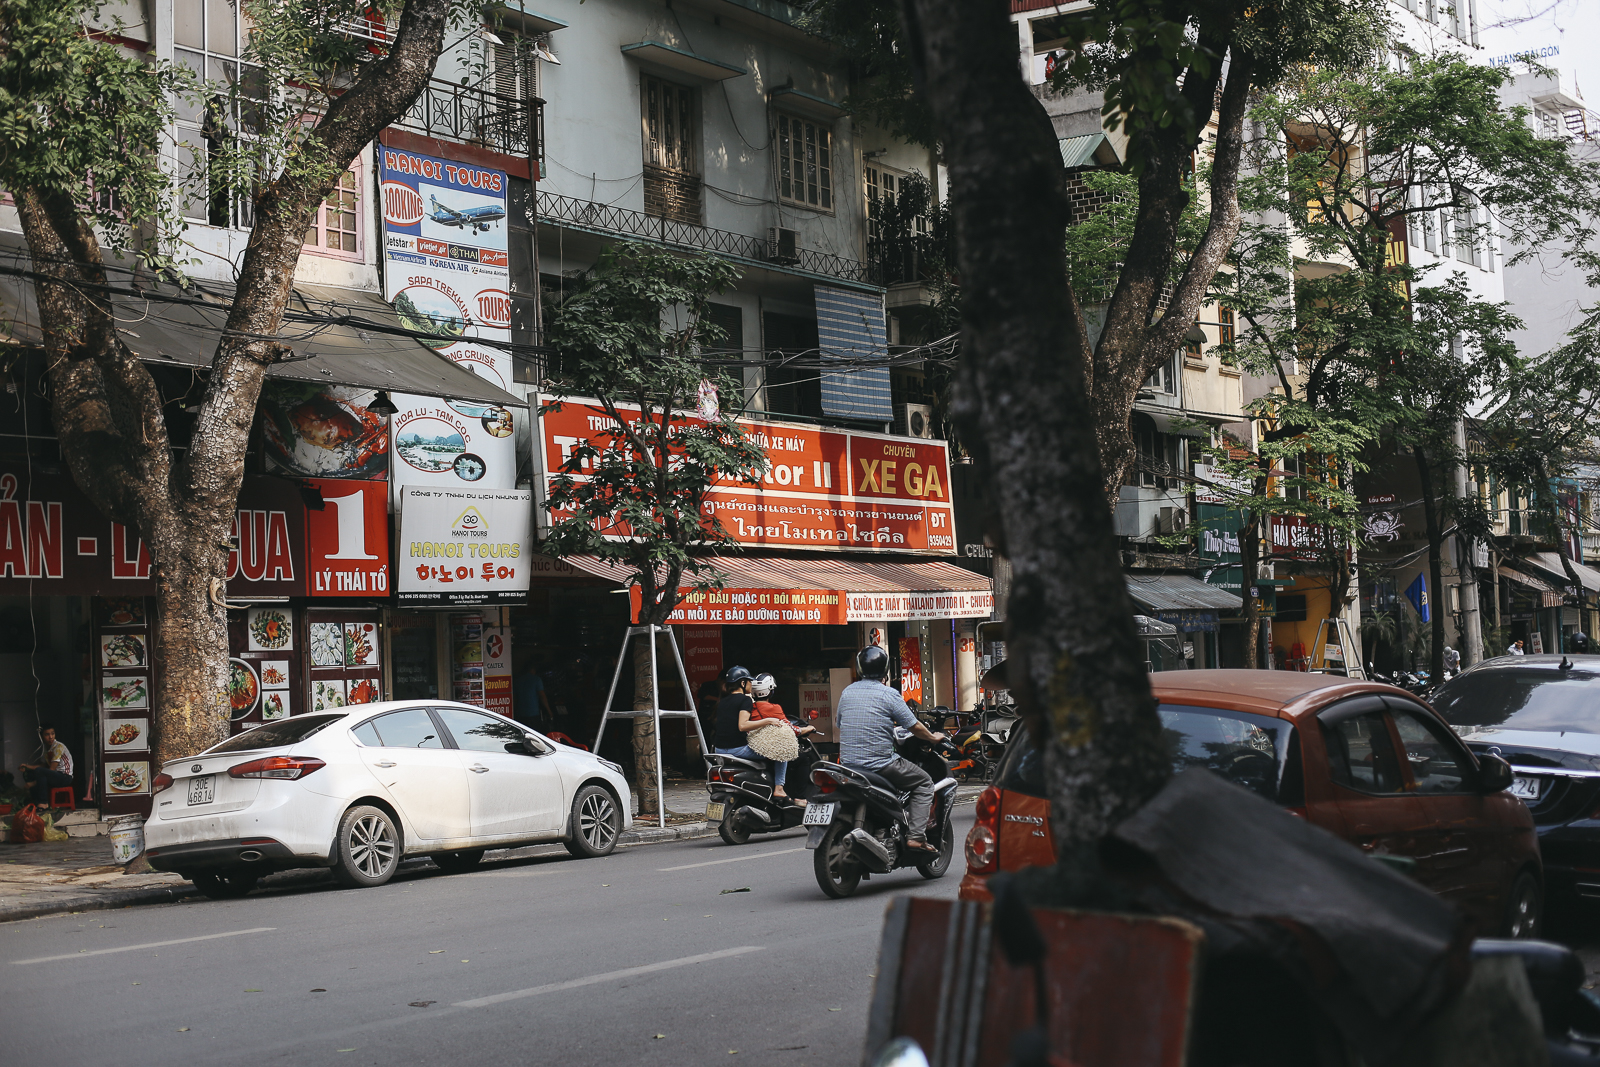 Hanoi_X, Hanoi, Vietnam, Photo and Travel Diary by The Curly Head, Photography by Amelie Niederbuchner,